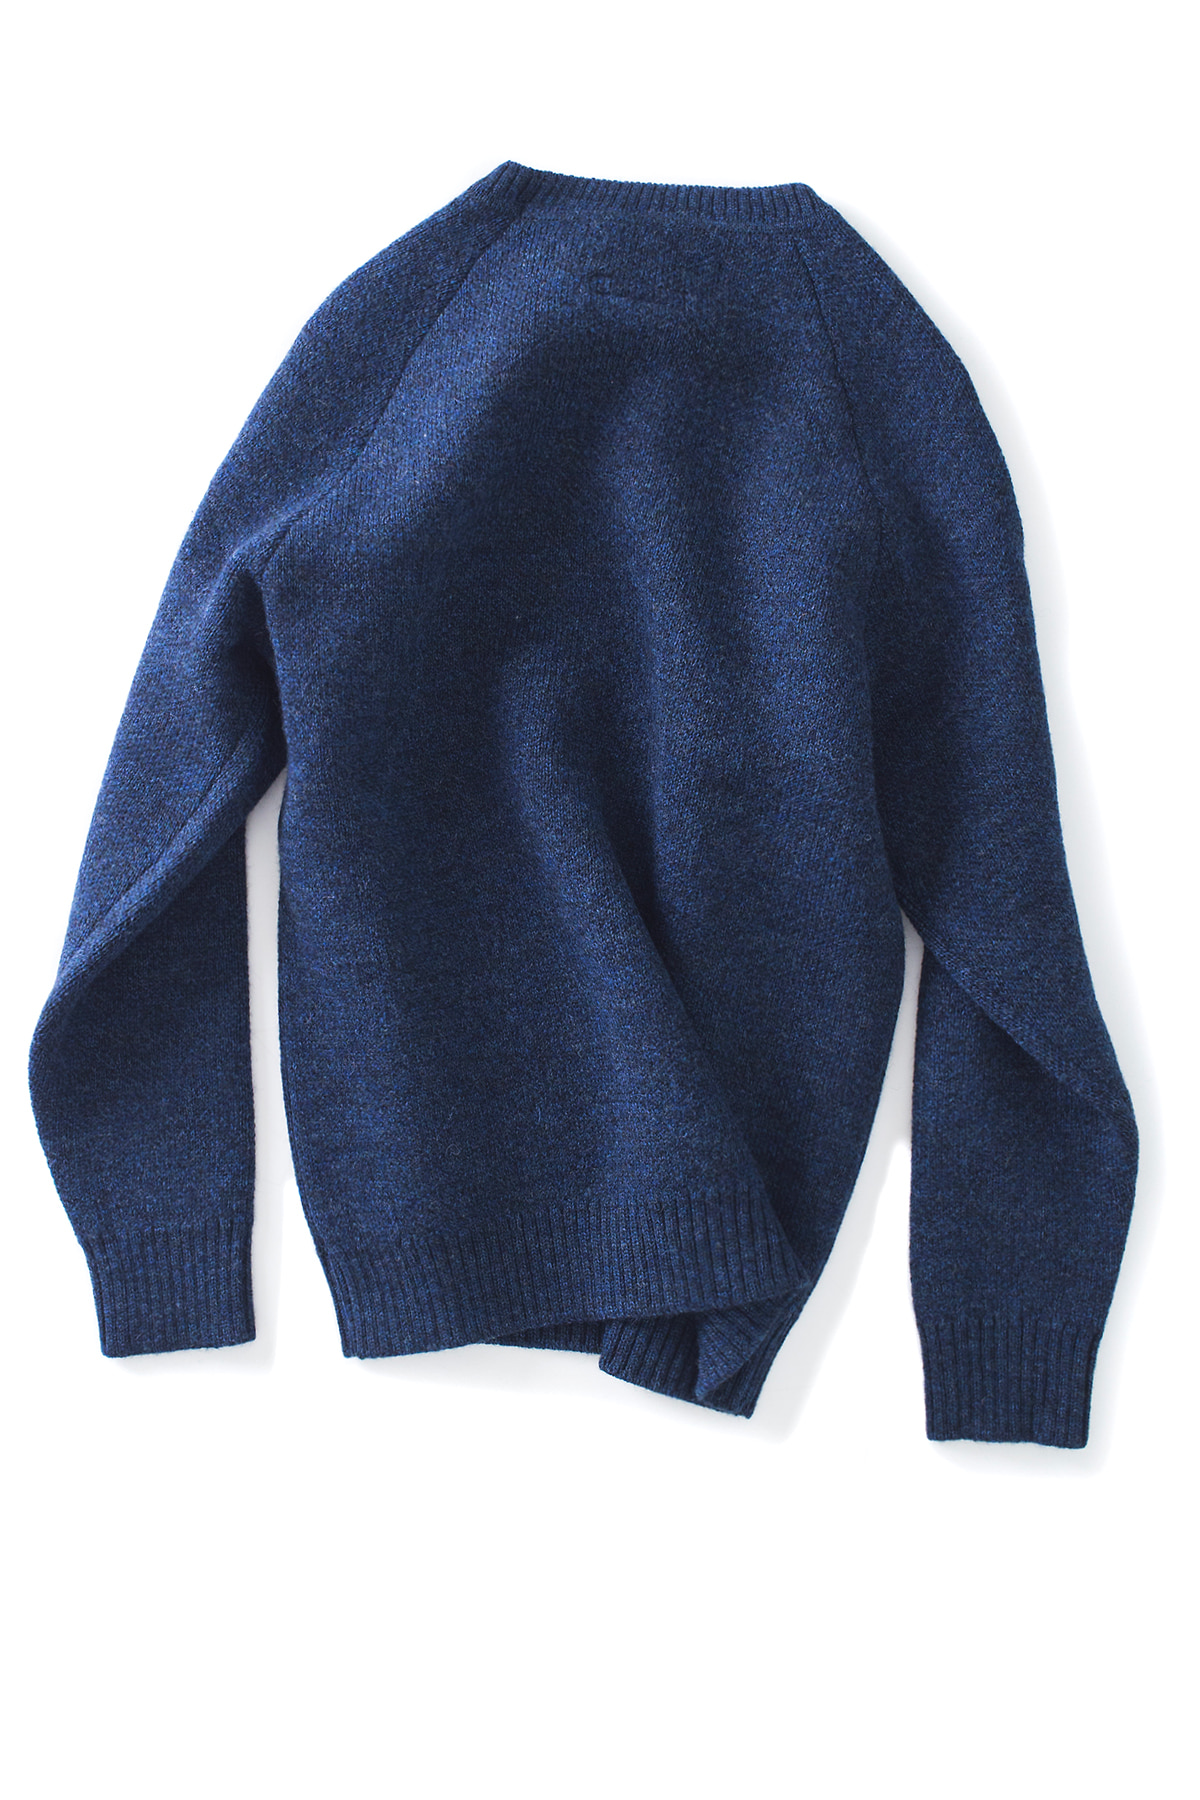 EEL : Nordic Sweater (Navy)